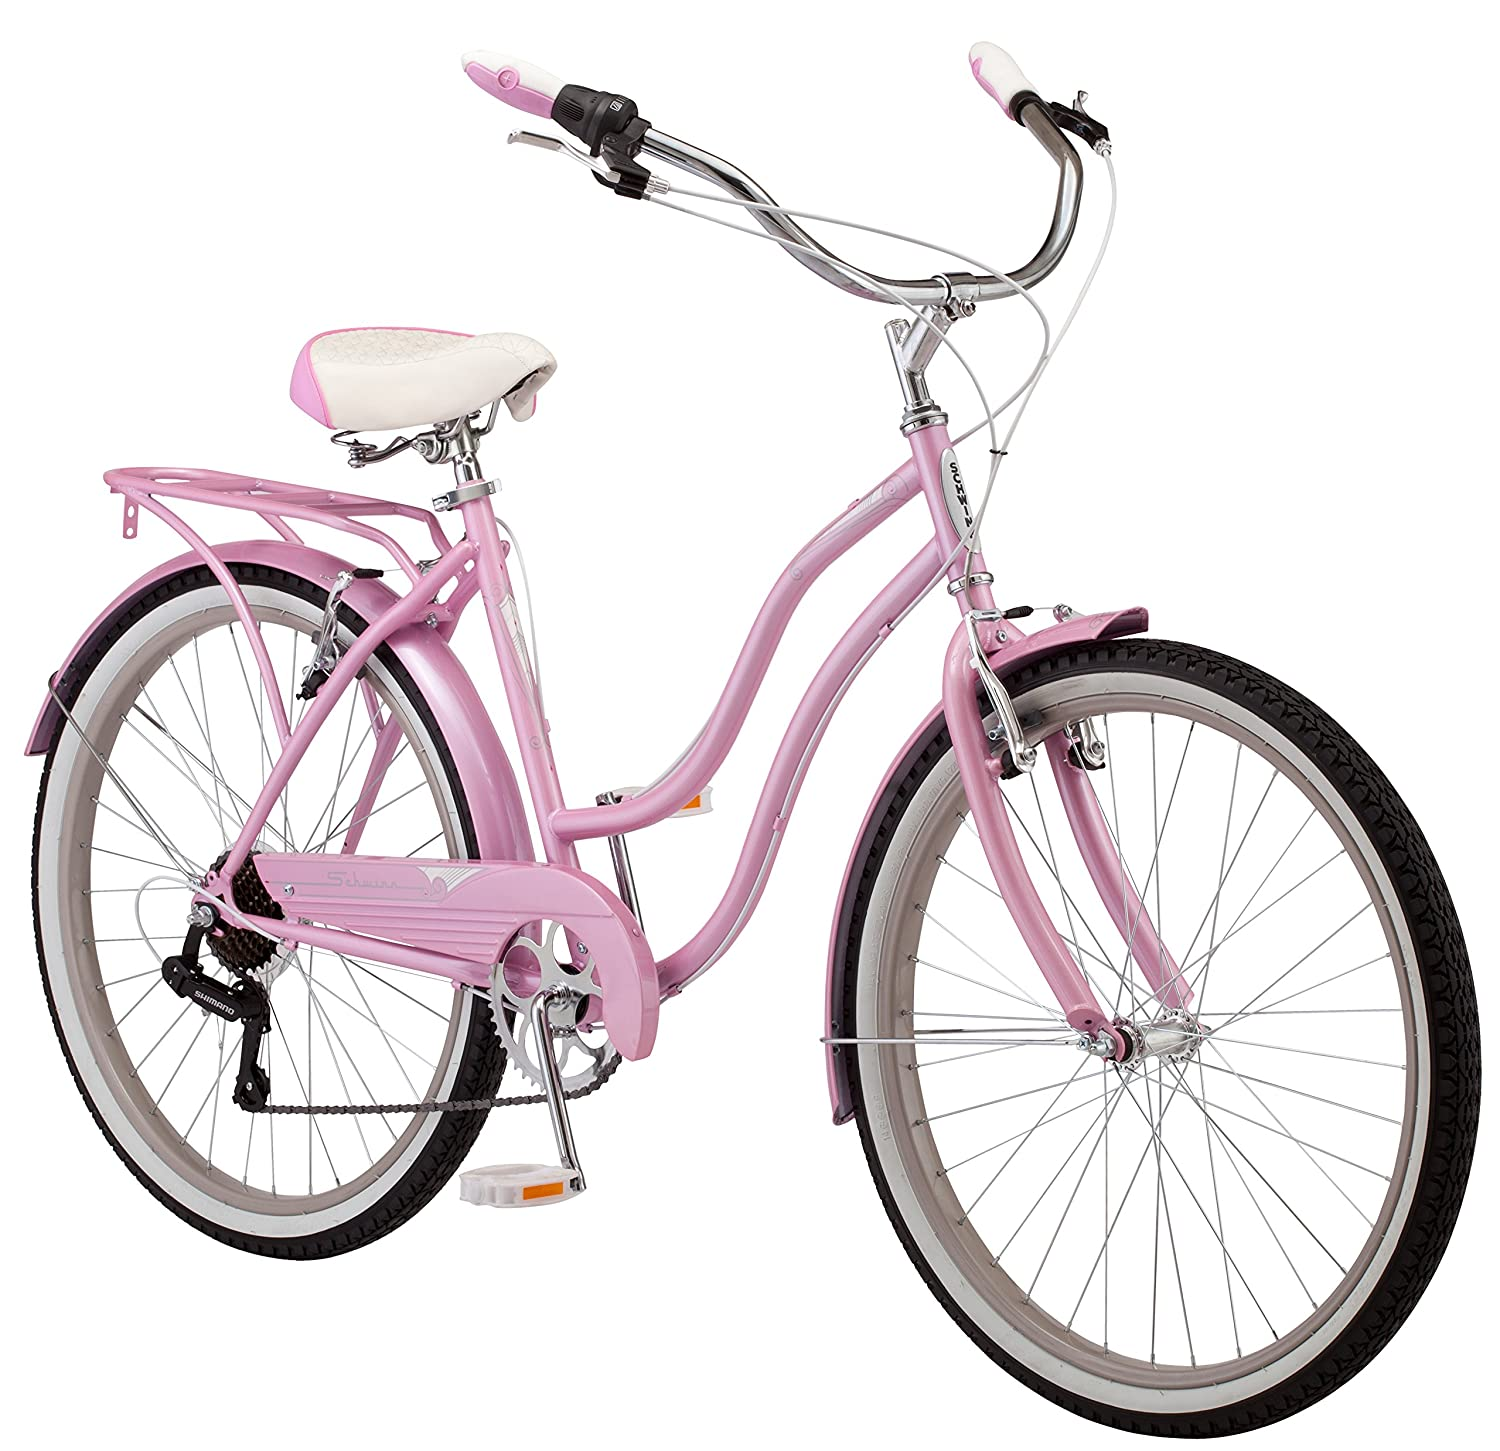 Schwinn Perla Women's Cruiser Bicycle, Featuring 18-Inch Step-Through Steel Frame and 7-Speed Drivetrain with Front and Rear Fenders, Rear Rack, and 26-Inch Wheels, Yellow, Blue and Pink Colors